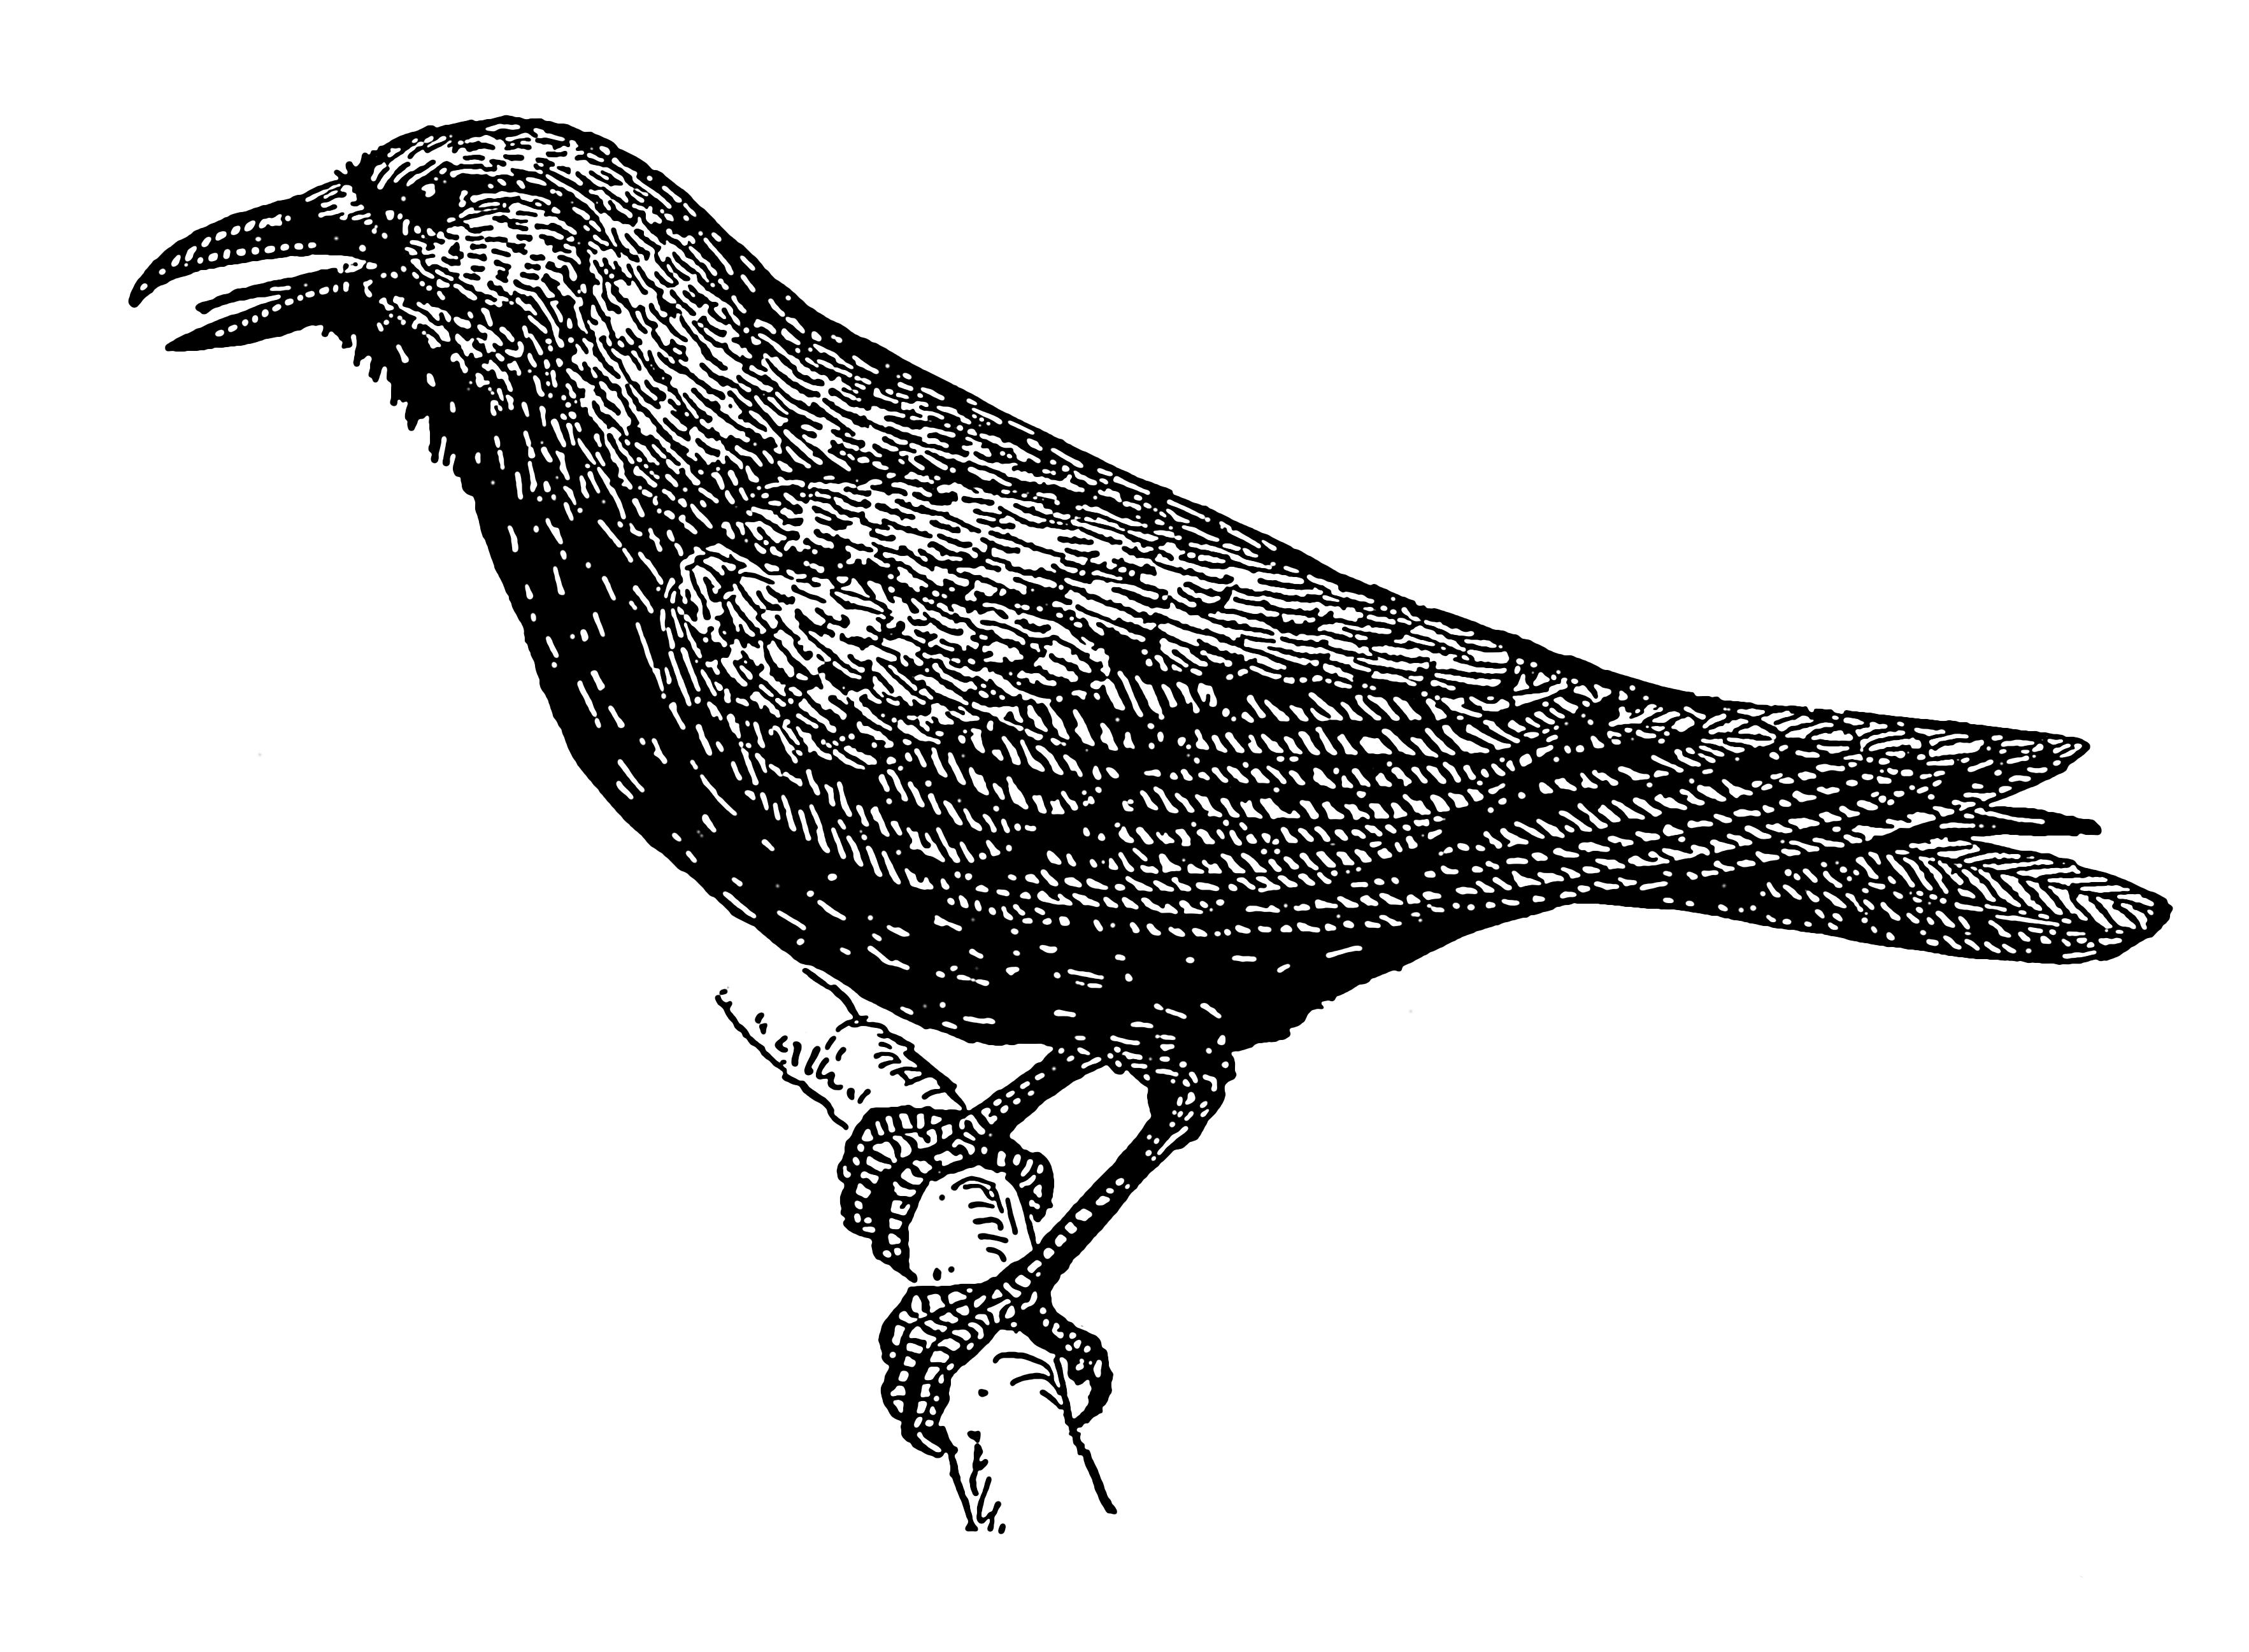 Genius in the Trees: What is it about Crows? - Bullshit IST